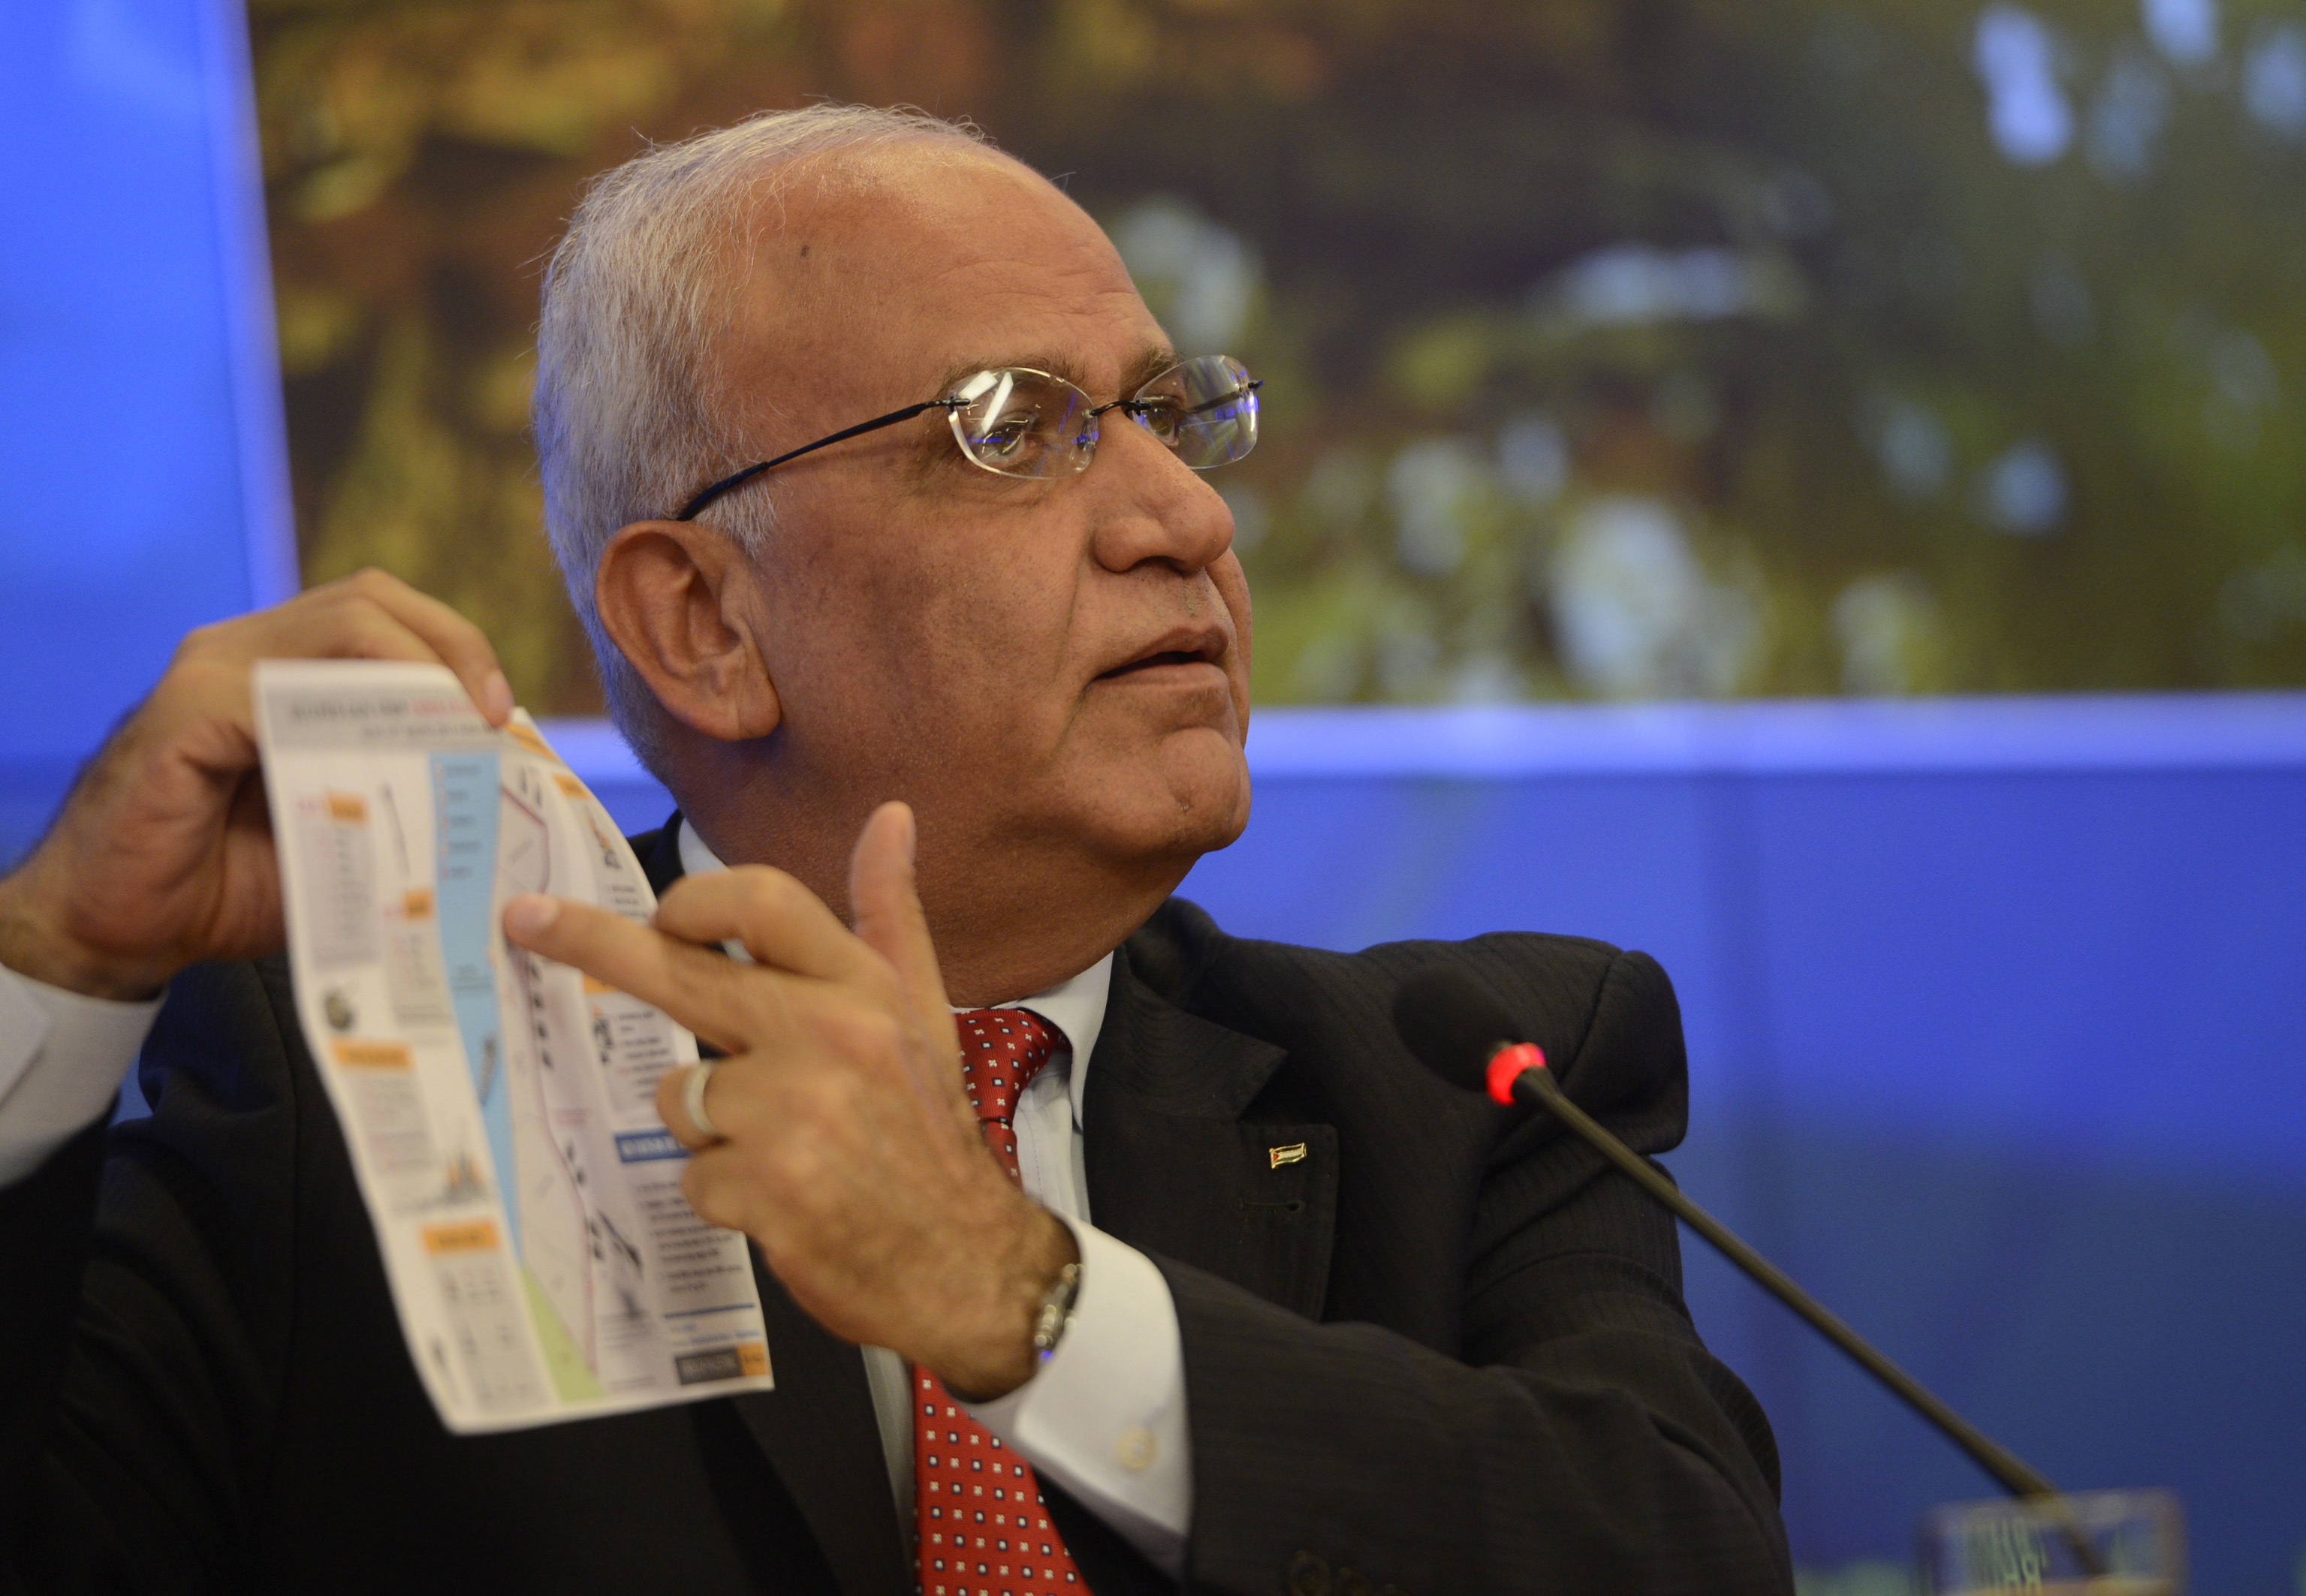 Chief Palestinian negotiator Saeb Erekat speaks to media about the peace negotiations between Palestine and Israel after a meeting with Russian Foreign Minister Sergei Lavrov (not seen) in Moscow on Aug. 19, 2014